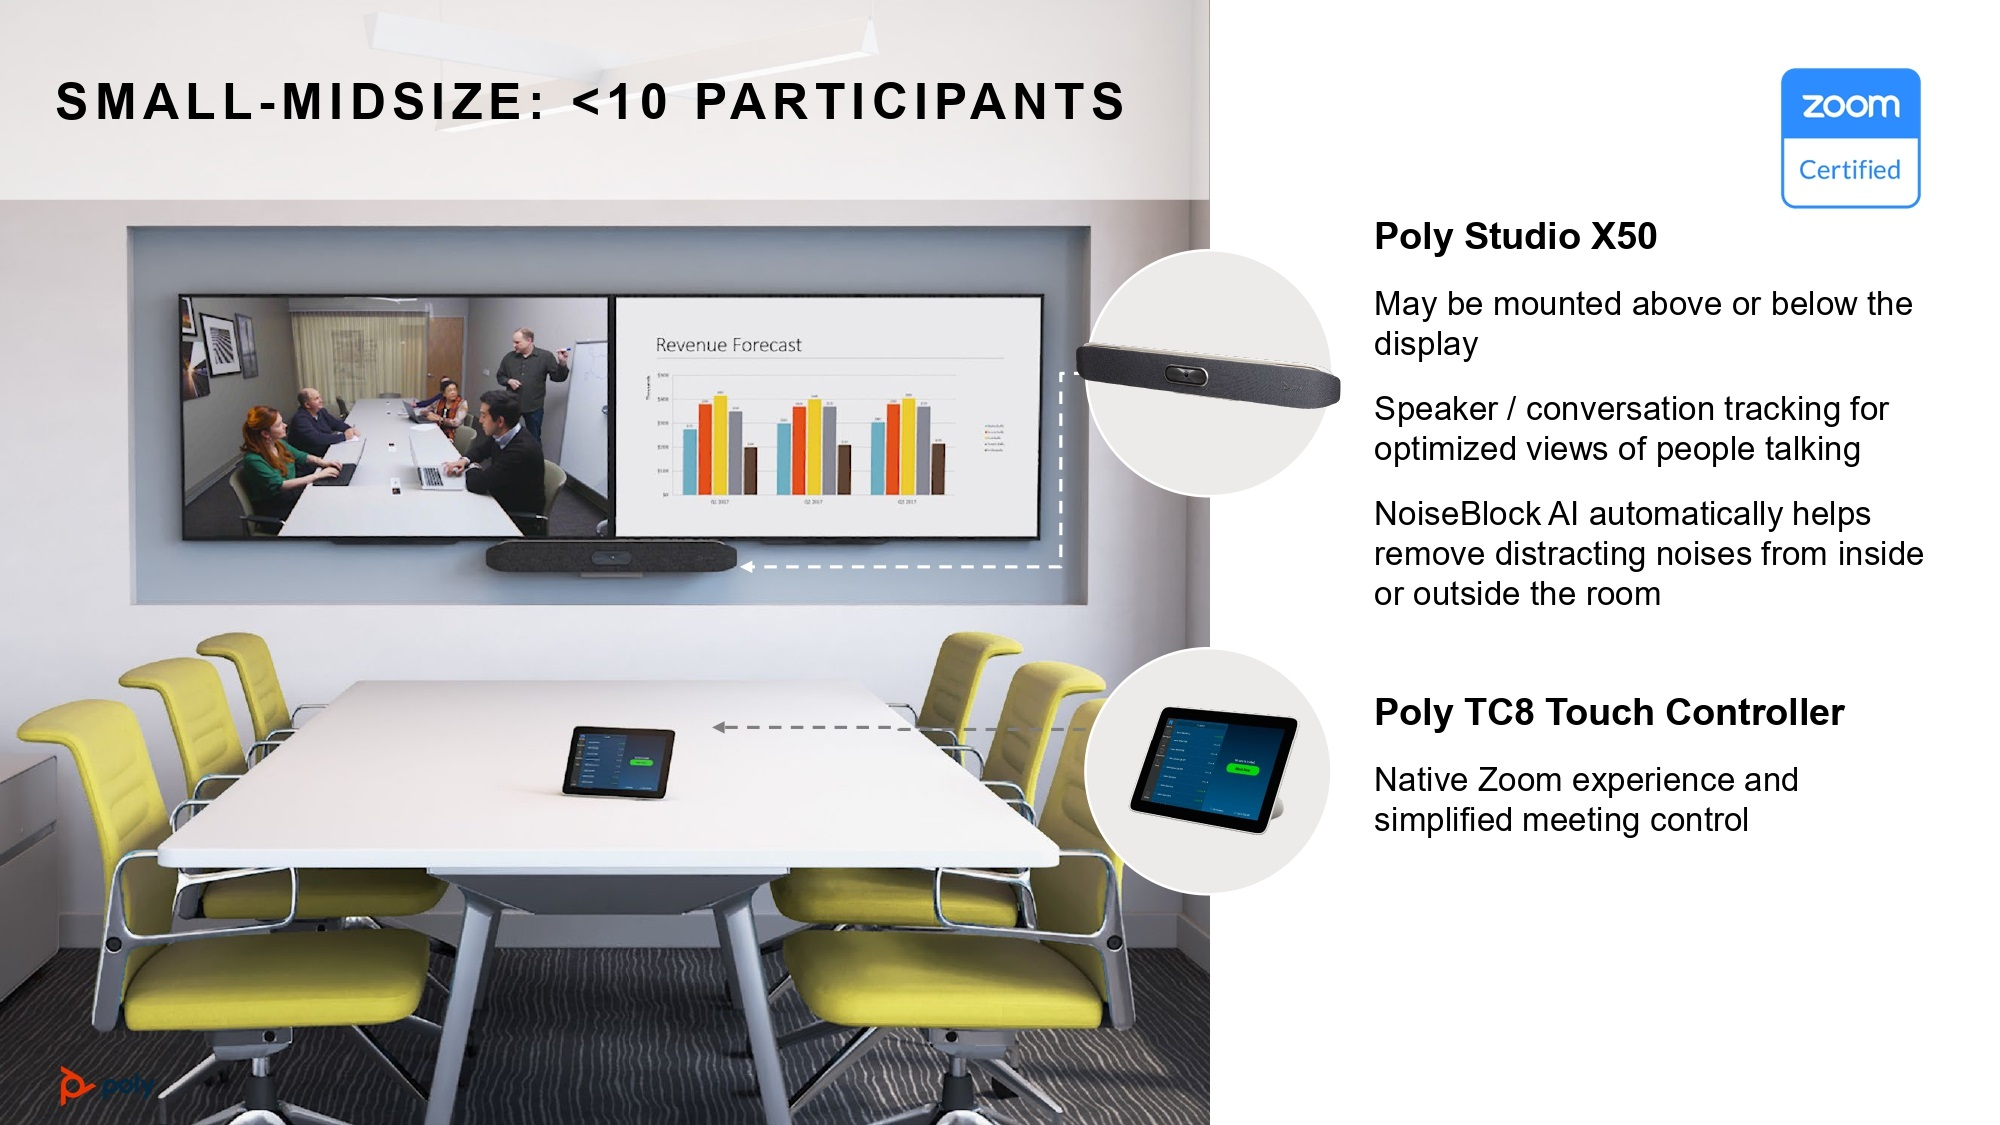 Medium Room Video Conferencing Solutions From Jabra, Poly, Polycom and Plantronics | LIONWARE